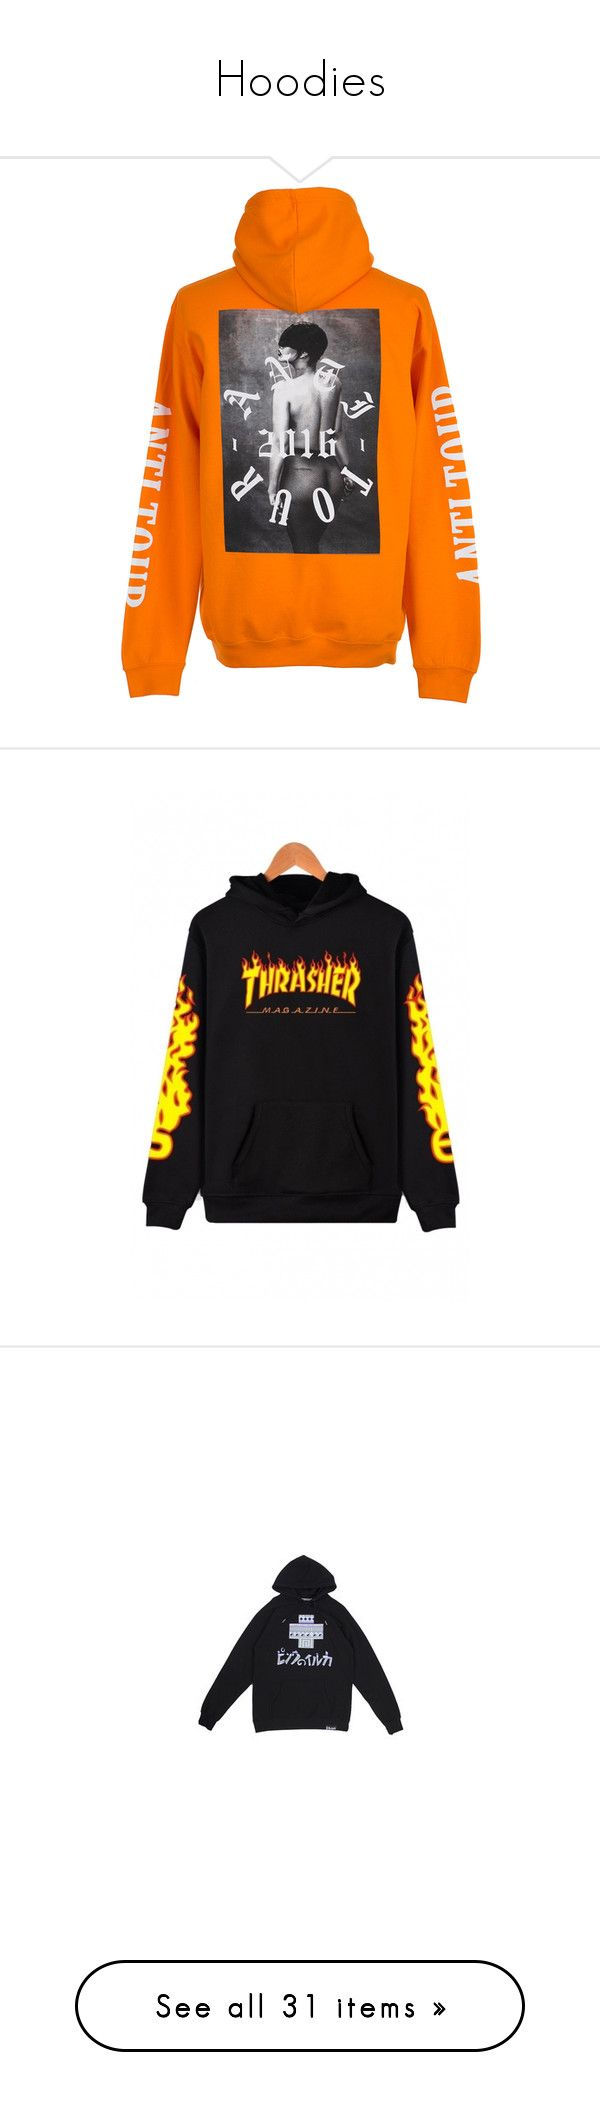 """""""Hoodies"""" by giselle123456 on Polyvore featuring tops, hoodies, jackets, sweaters, clothing - hoodies, orange hooded sweatshirt, hooded sweatshirt, orange hoodie, sweatshirt hoodies y hooded pullover"""